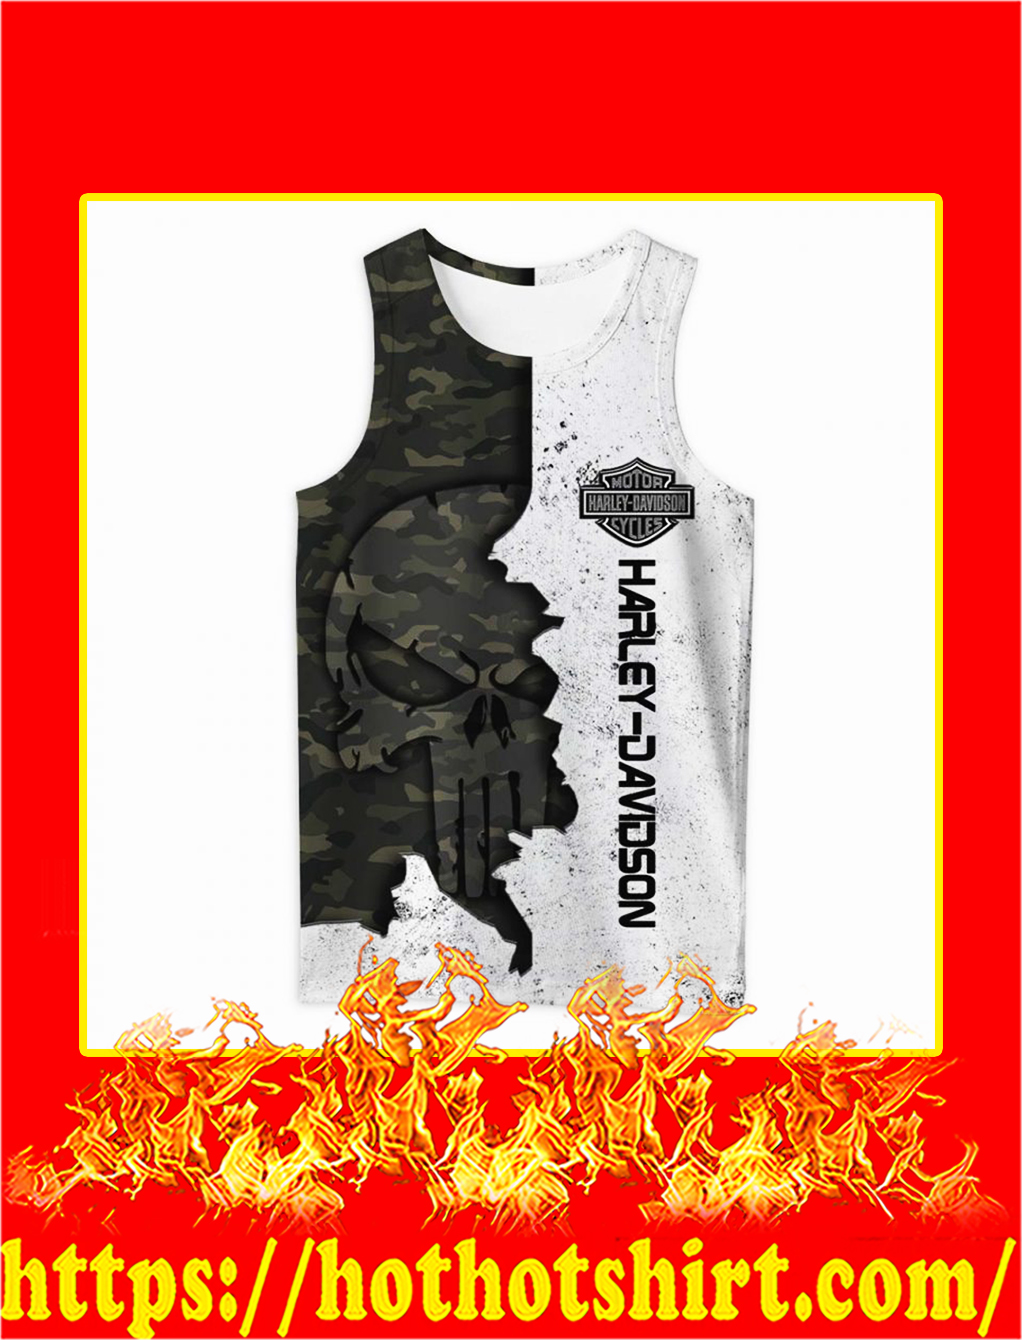 Harley davidson punisher skull camo 3d all over printed tank top